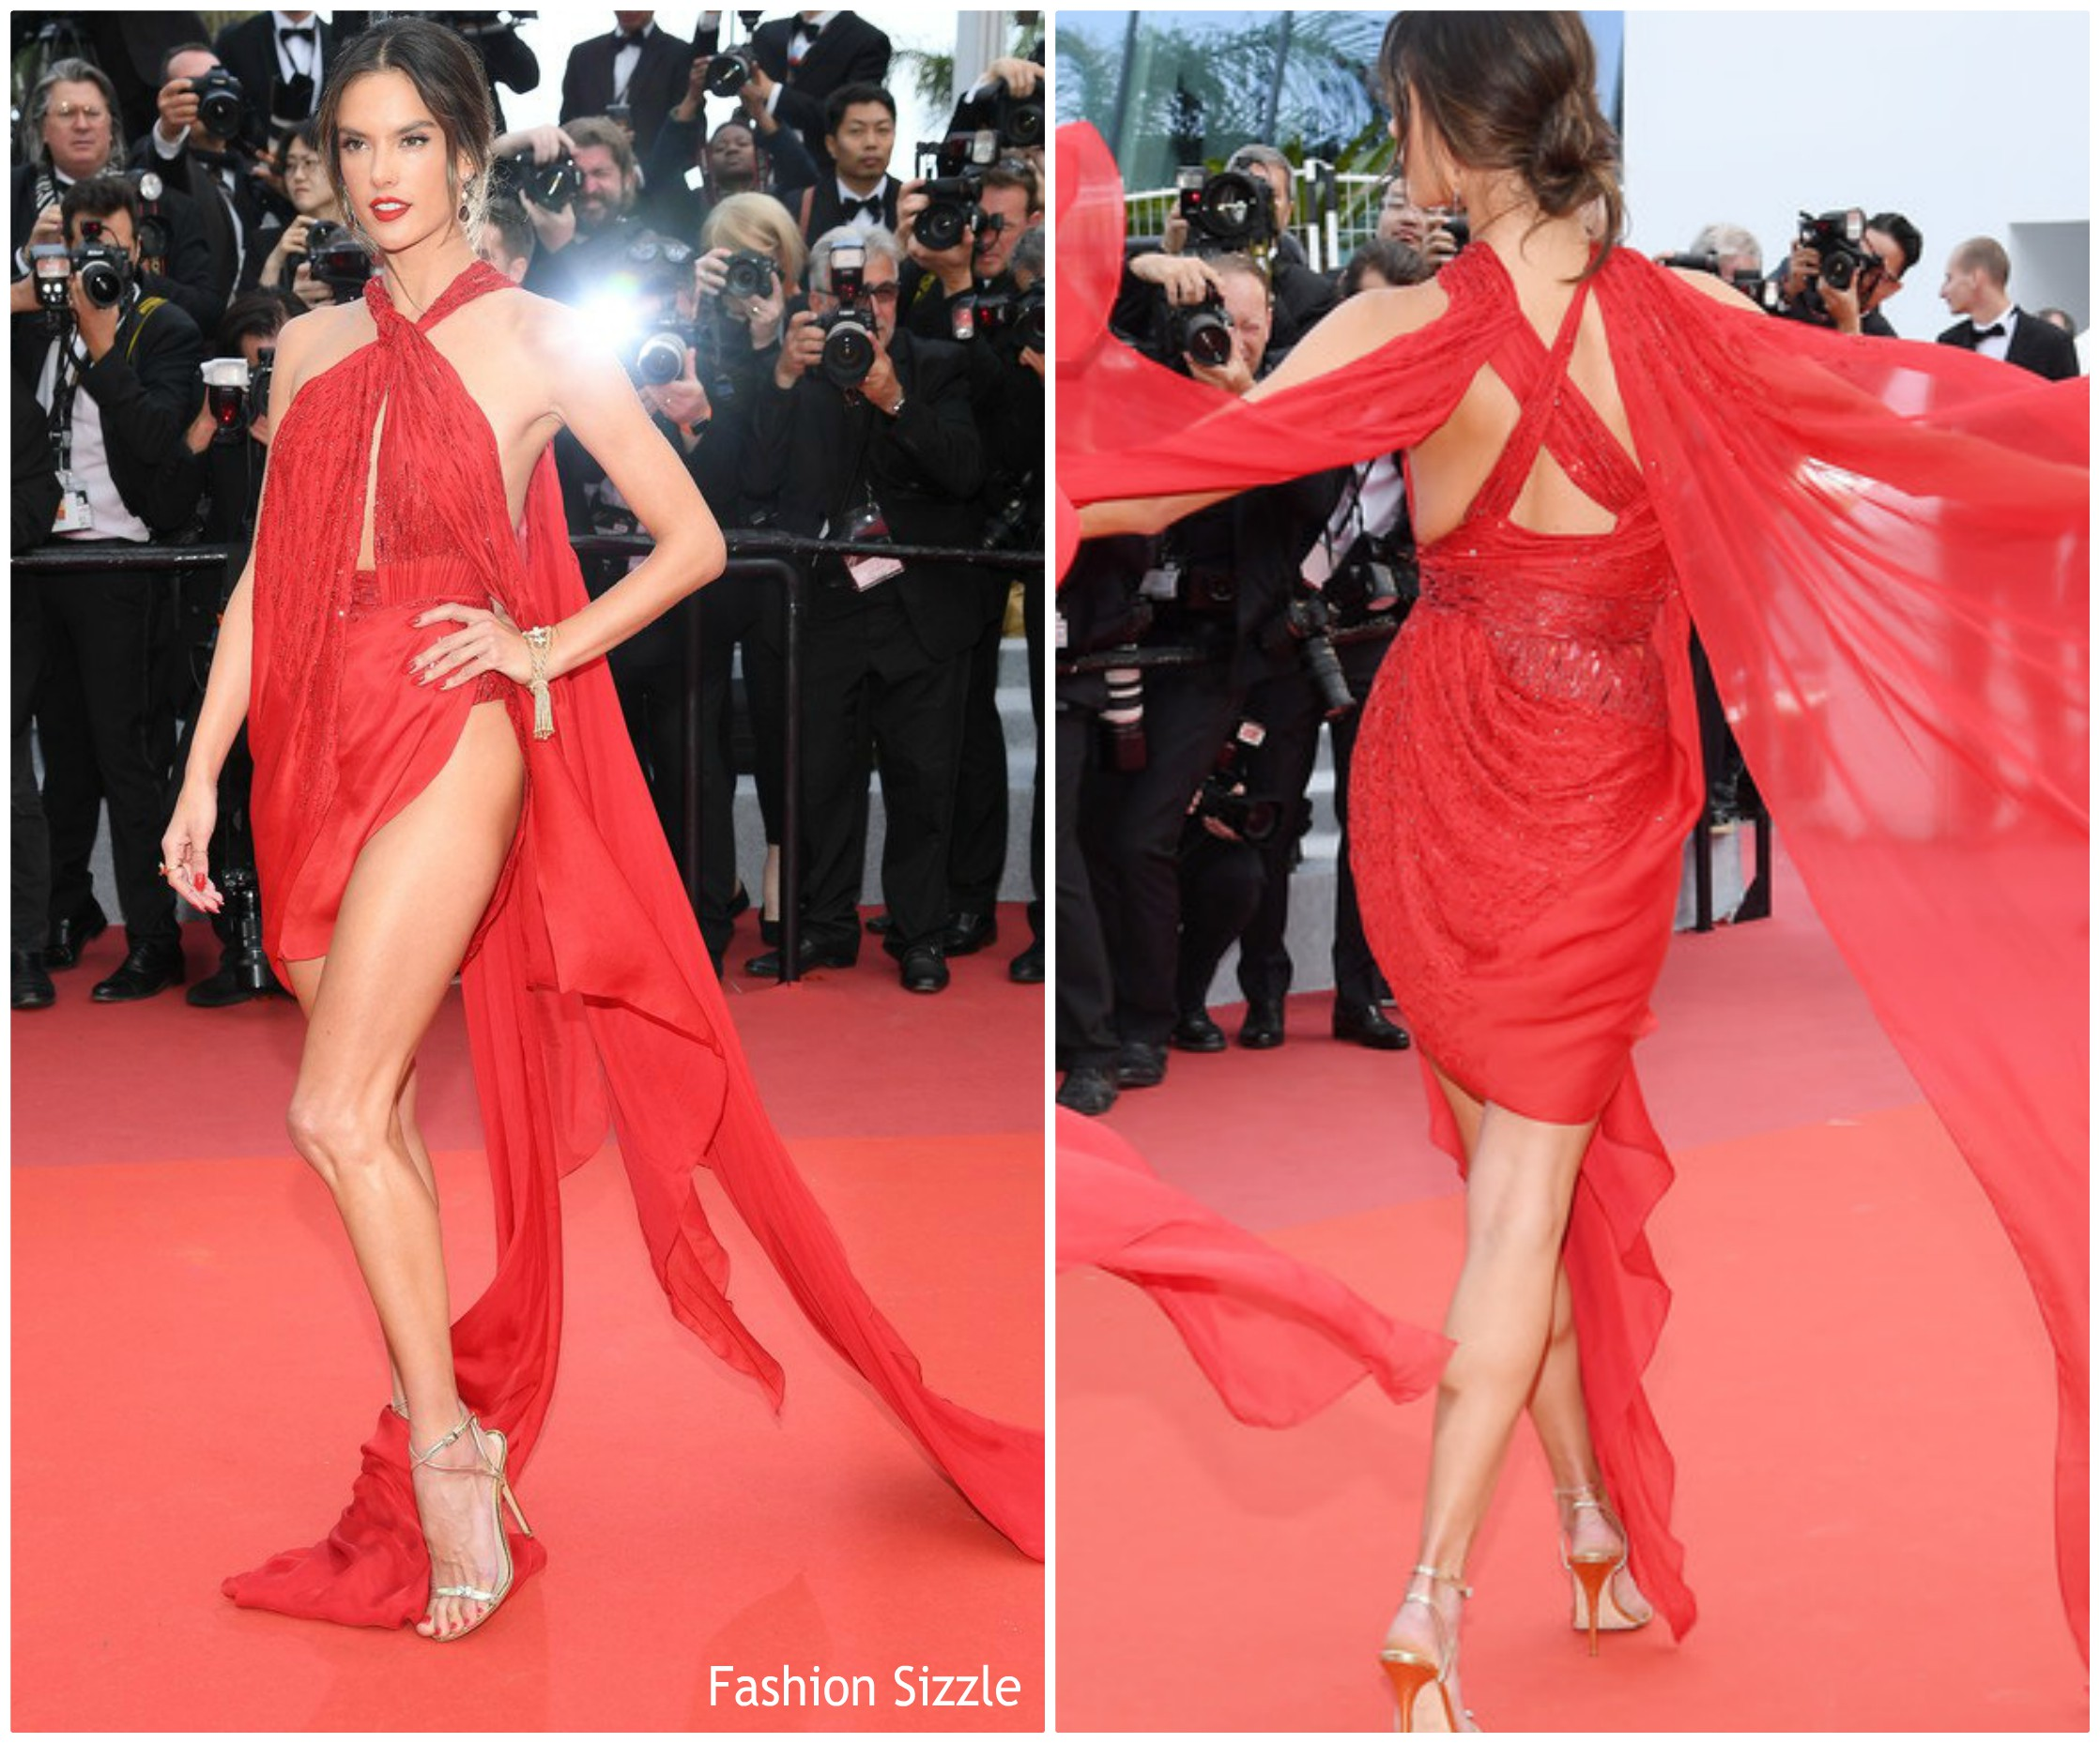 alessandra-ambrosio-in-julien-macdonald-les-miserables-cannes-film-festival-premiere